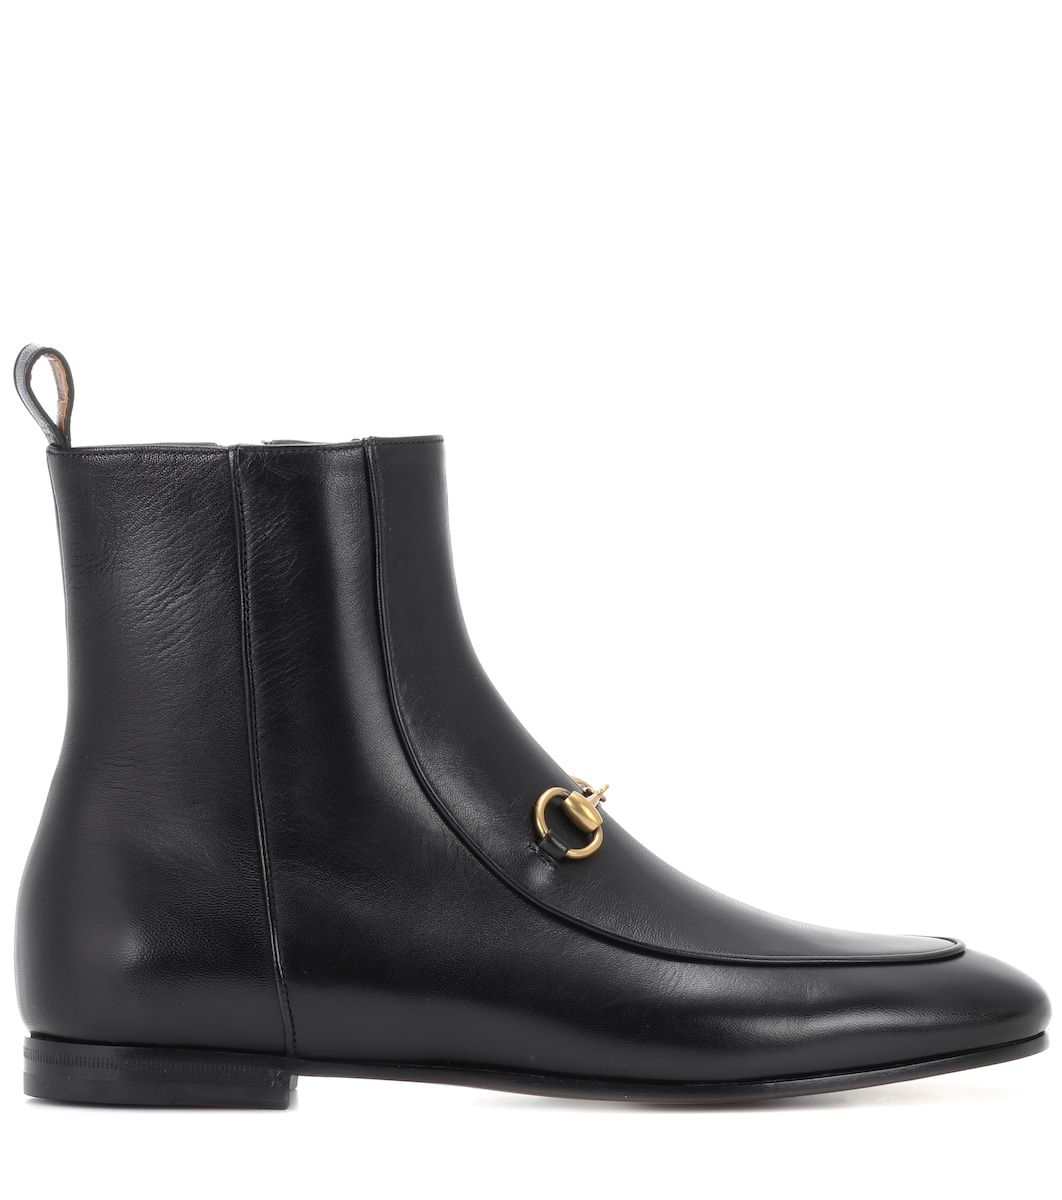 ffc66a07b14 Jordaan Leather Ankle Boots